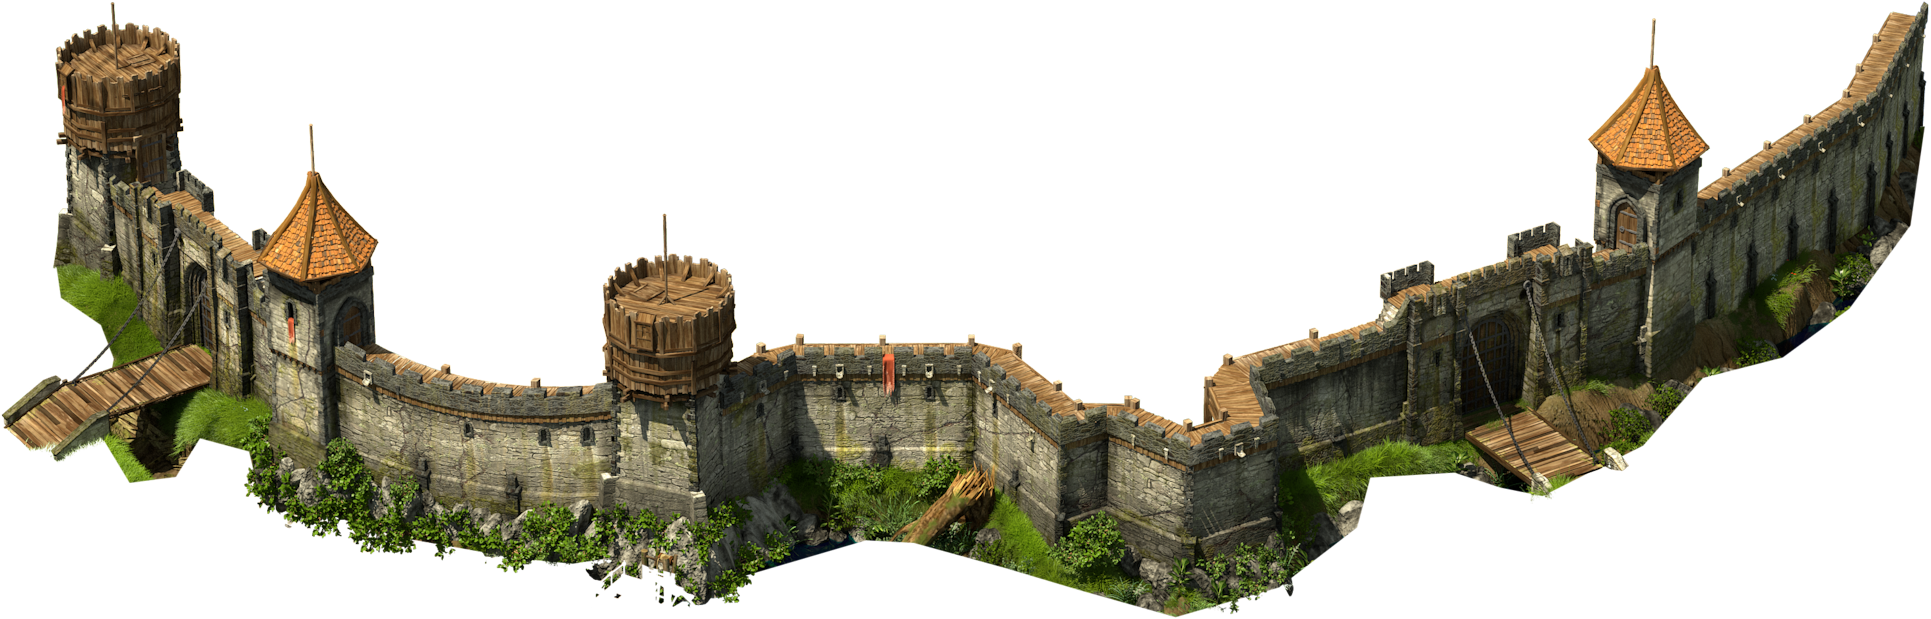 Fichier:Wall lvl 7-12 bottom.png — Tribalwars2 FR Wiki